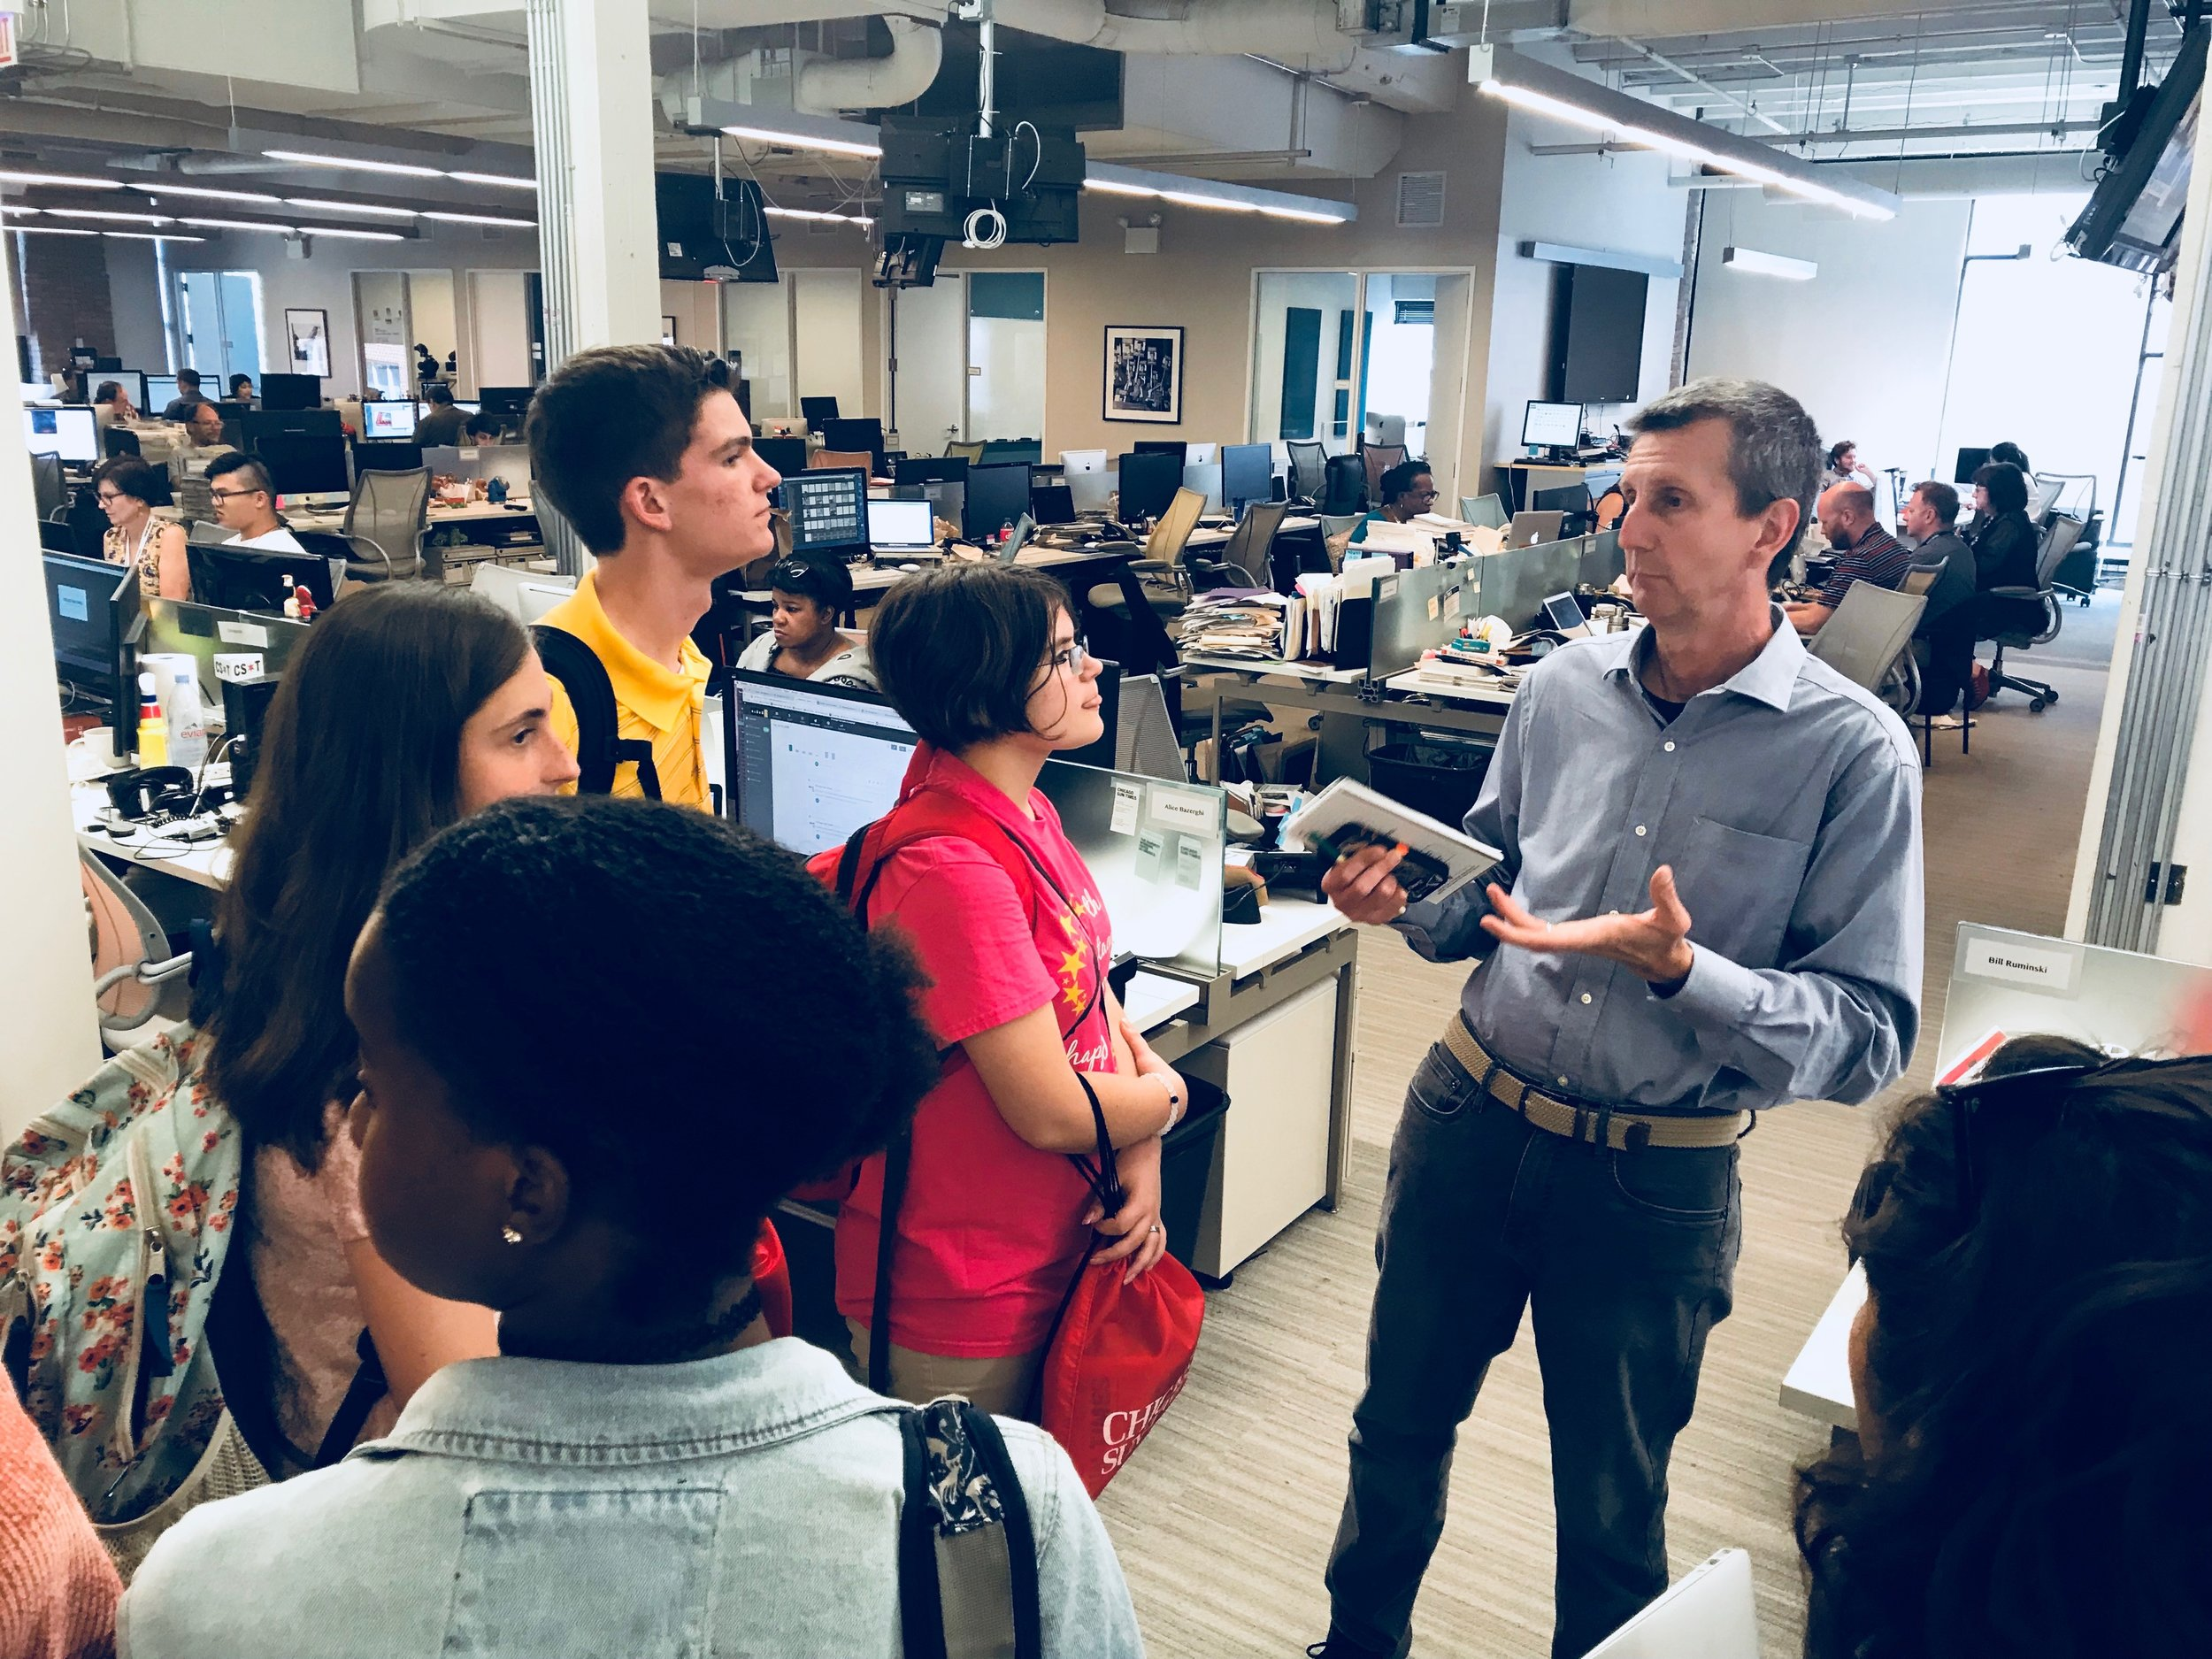 INVESTIGATIVE REPORTING AND PODCASTING - Work with Pulitzer Prize-winning faculty and media professionals.